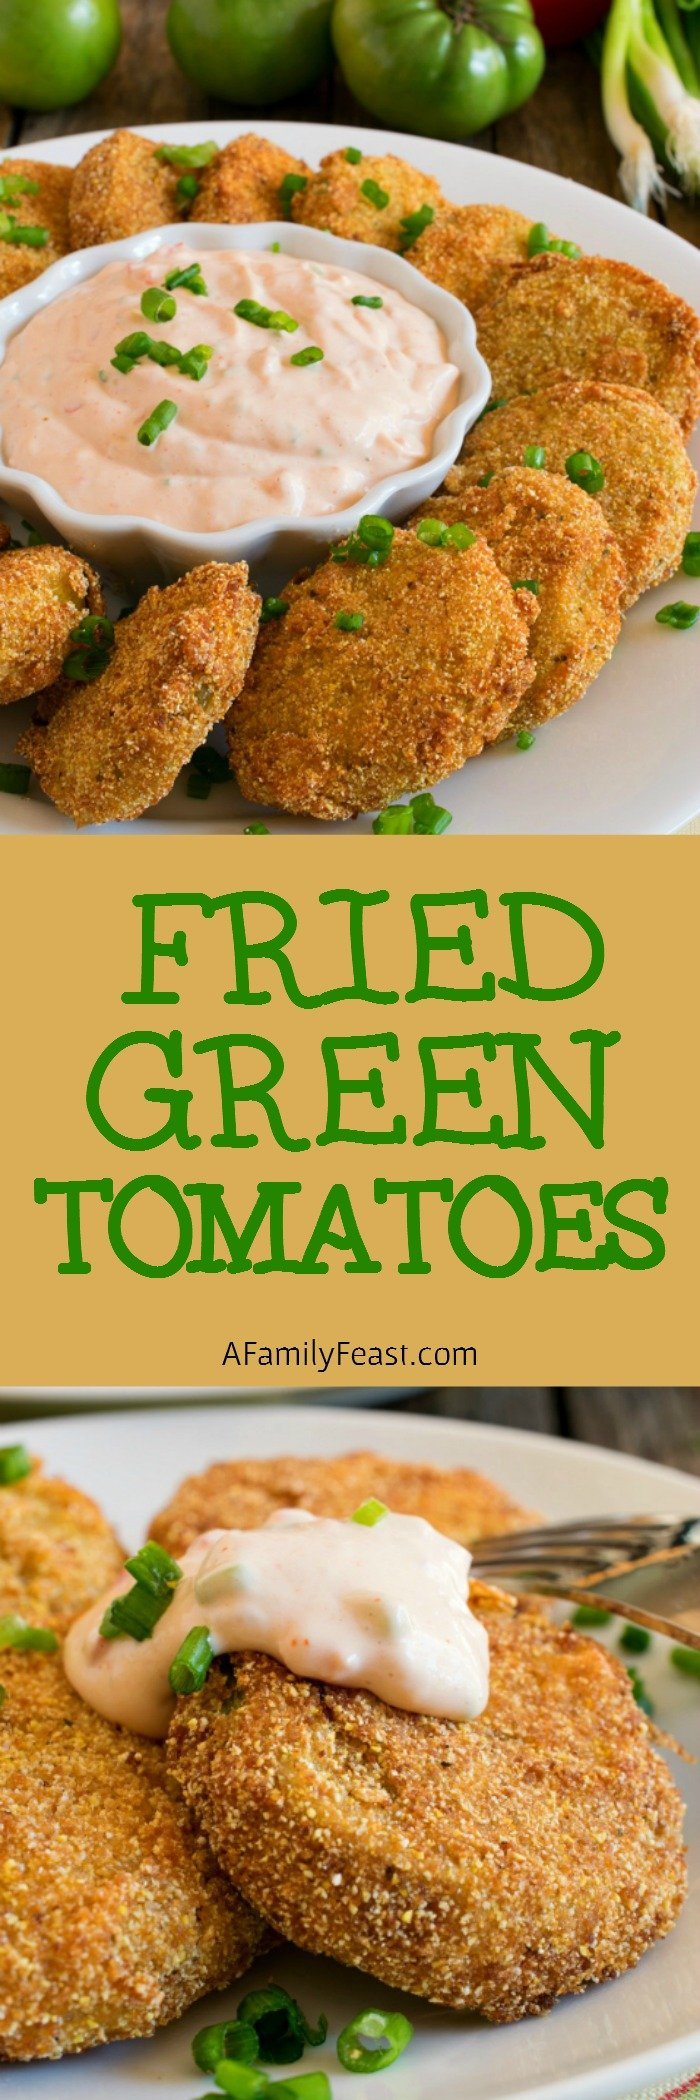 Fried Green Tomatoes with a creamy, zesty dipping sauce. Perfect for cooking with end-of-garden green tomatoes!